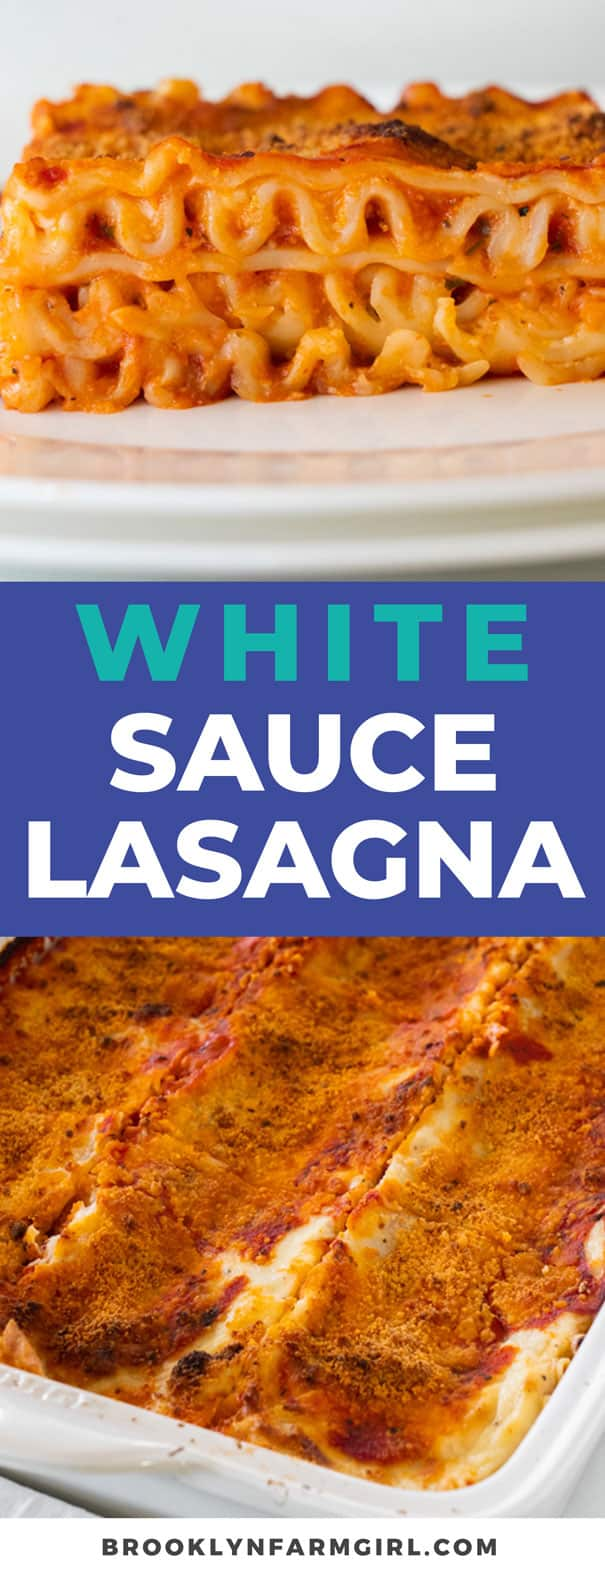 This white sauce lasagna recipe is one of our favorite comfort foods. Lasagna noodles are layered with spaghetti sauce, cheese, and a rich creamy alfredo inspired sauce. Serve it alongside a simple kale salad and garlic bread for a comfort meal that's perfect for any time of the year!